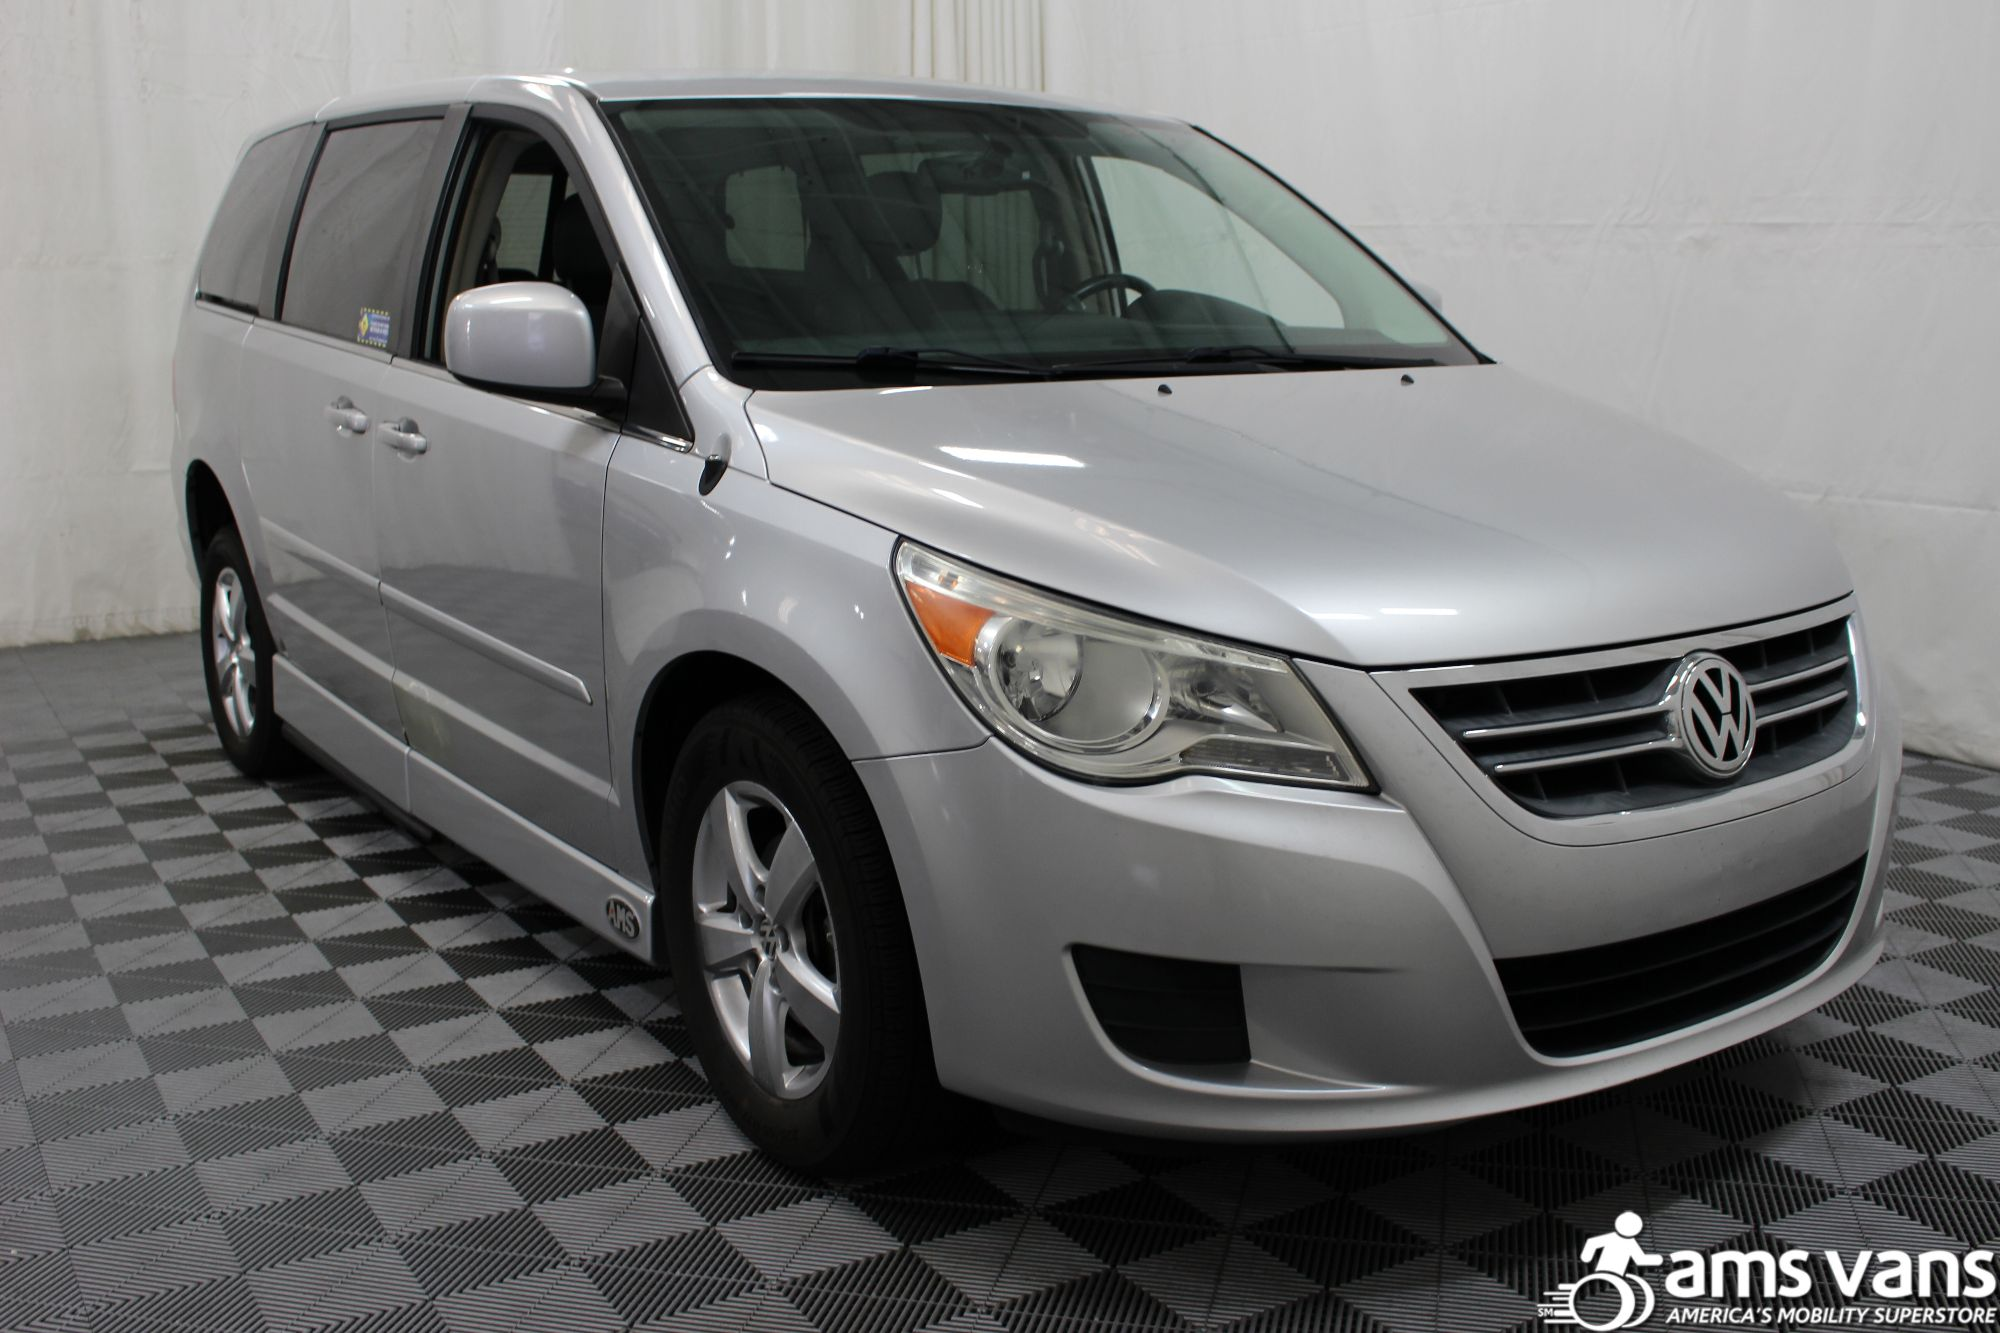 2010 Volkswagen Routan SE Wheelchair Van For Sale #11